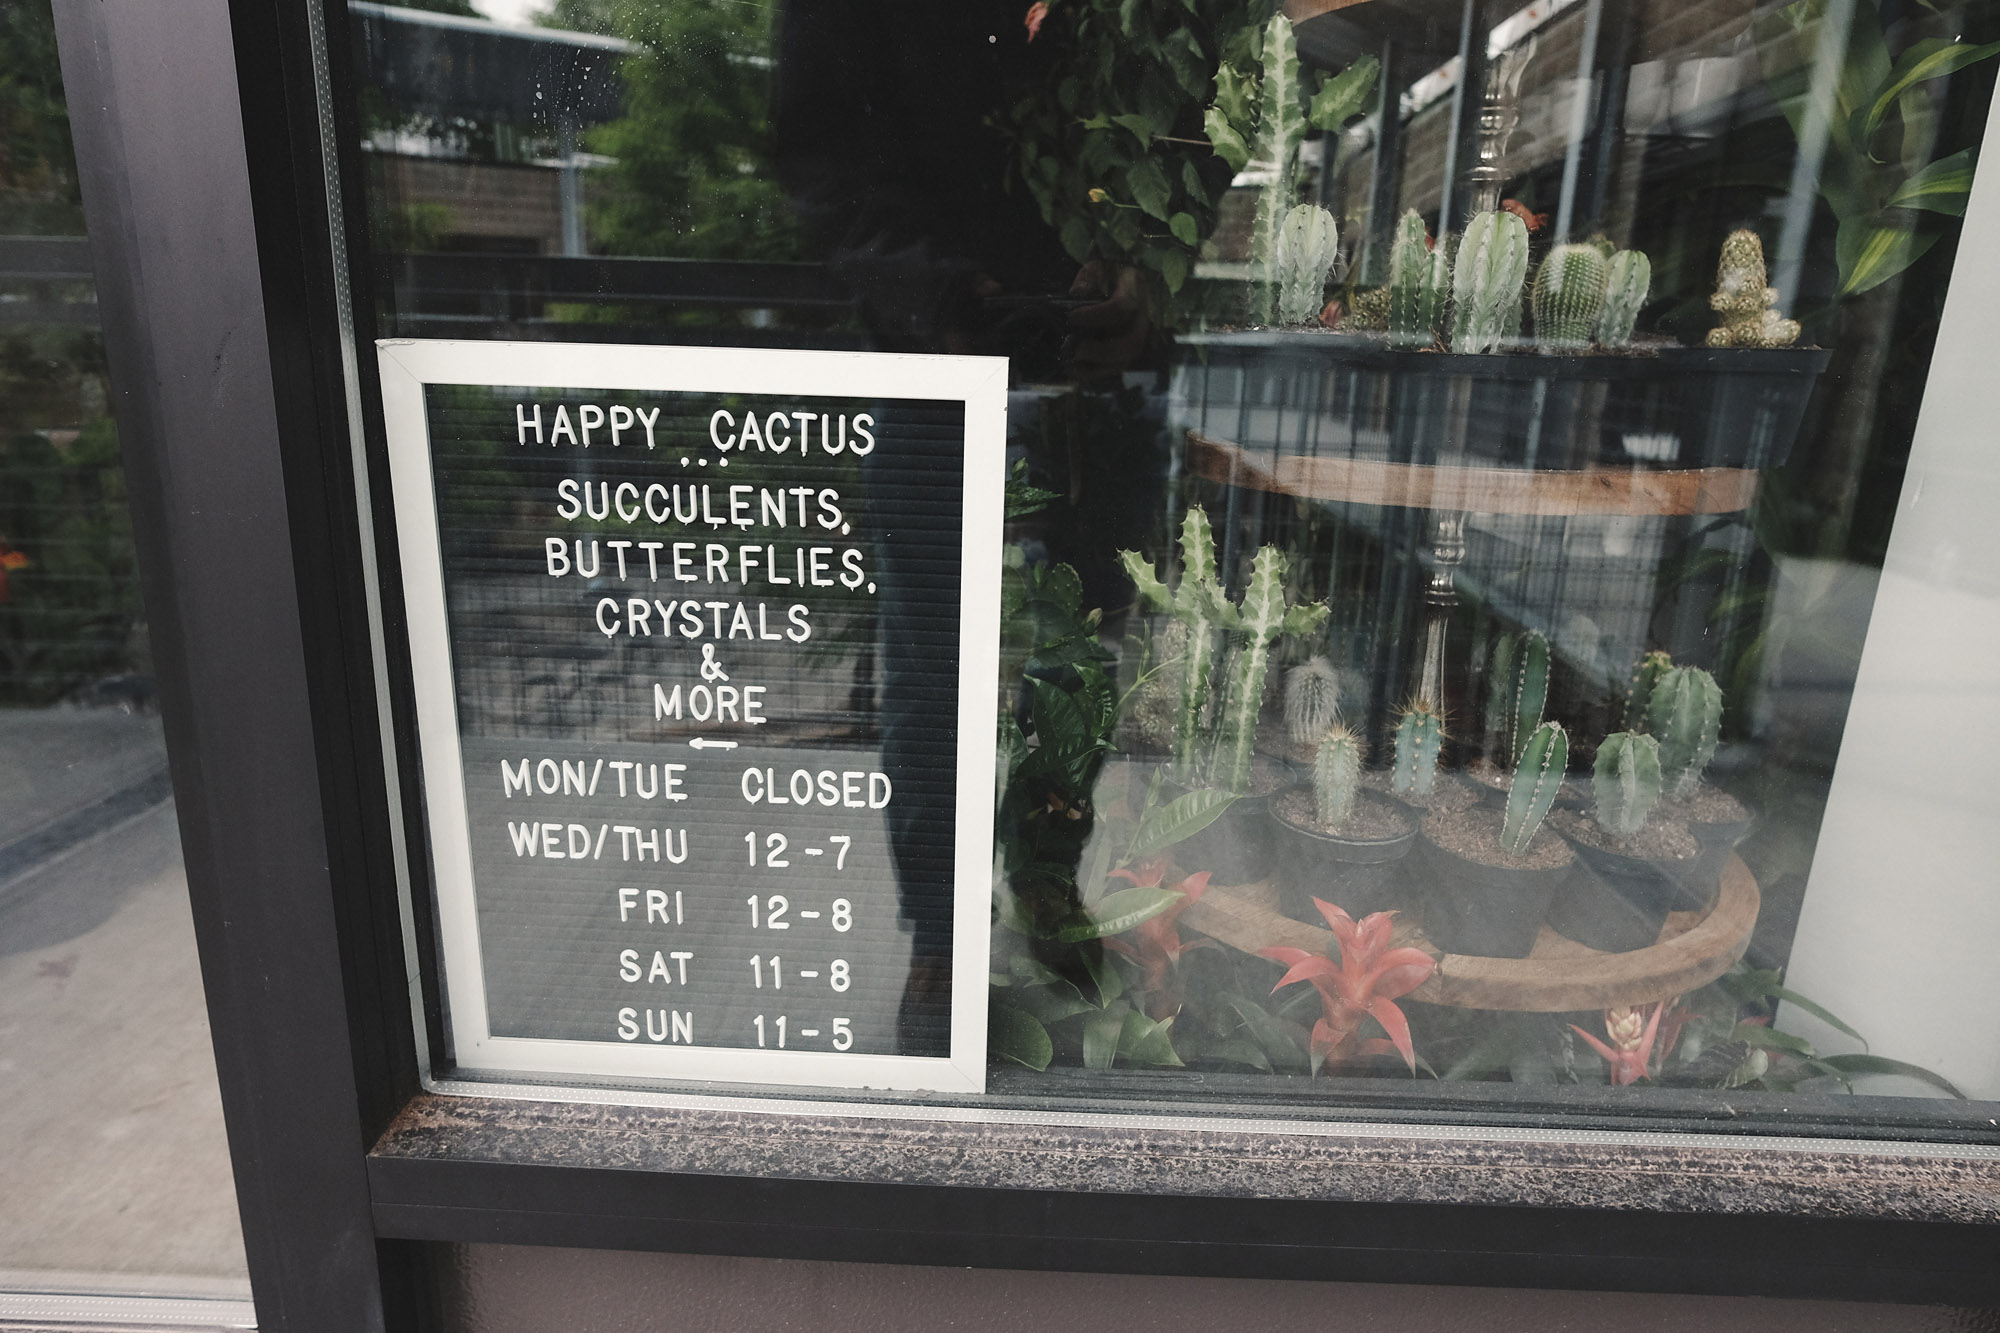 https://the-happy-cactus-gifts-home-decor.myshopify.com